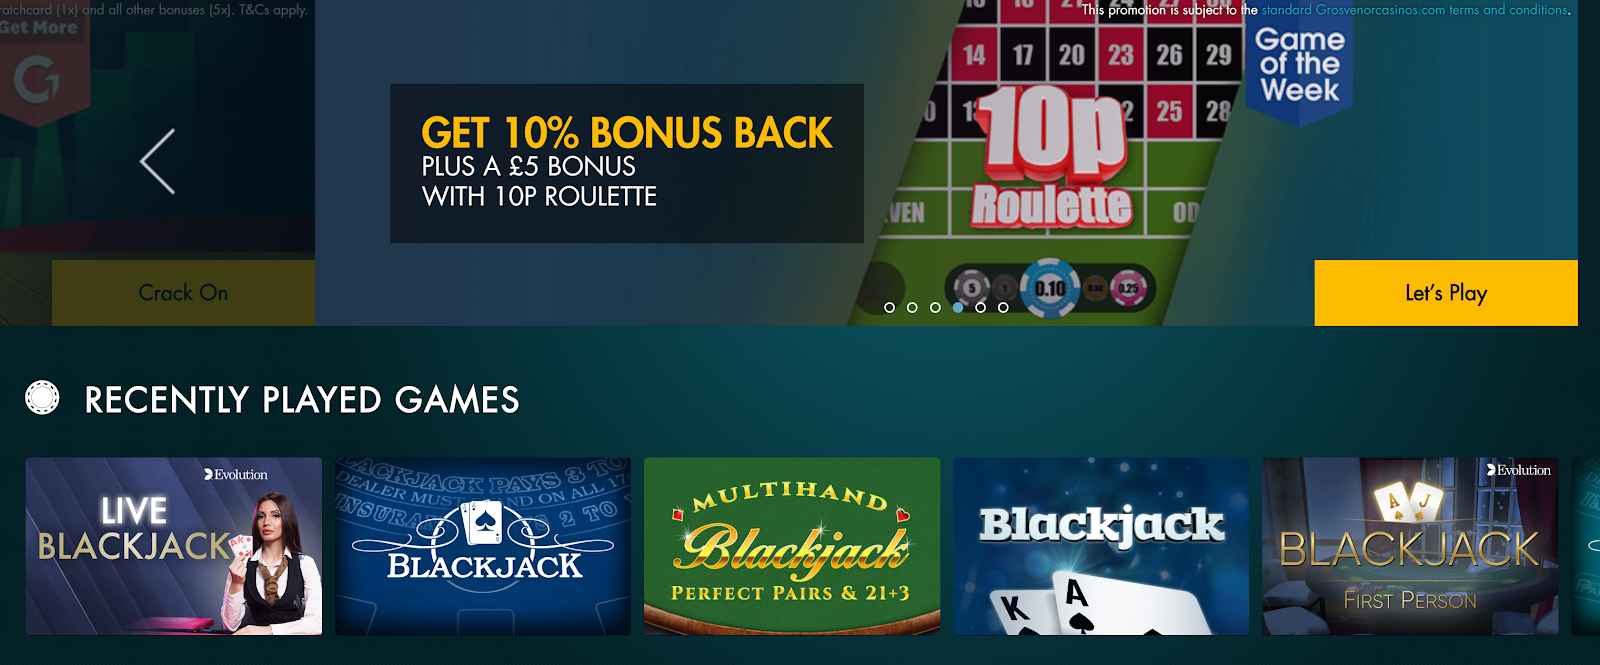 Grosvenor Casinos features some solid payouts